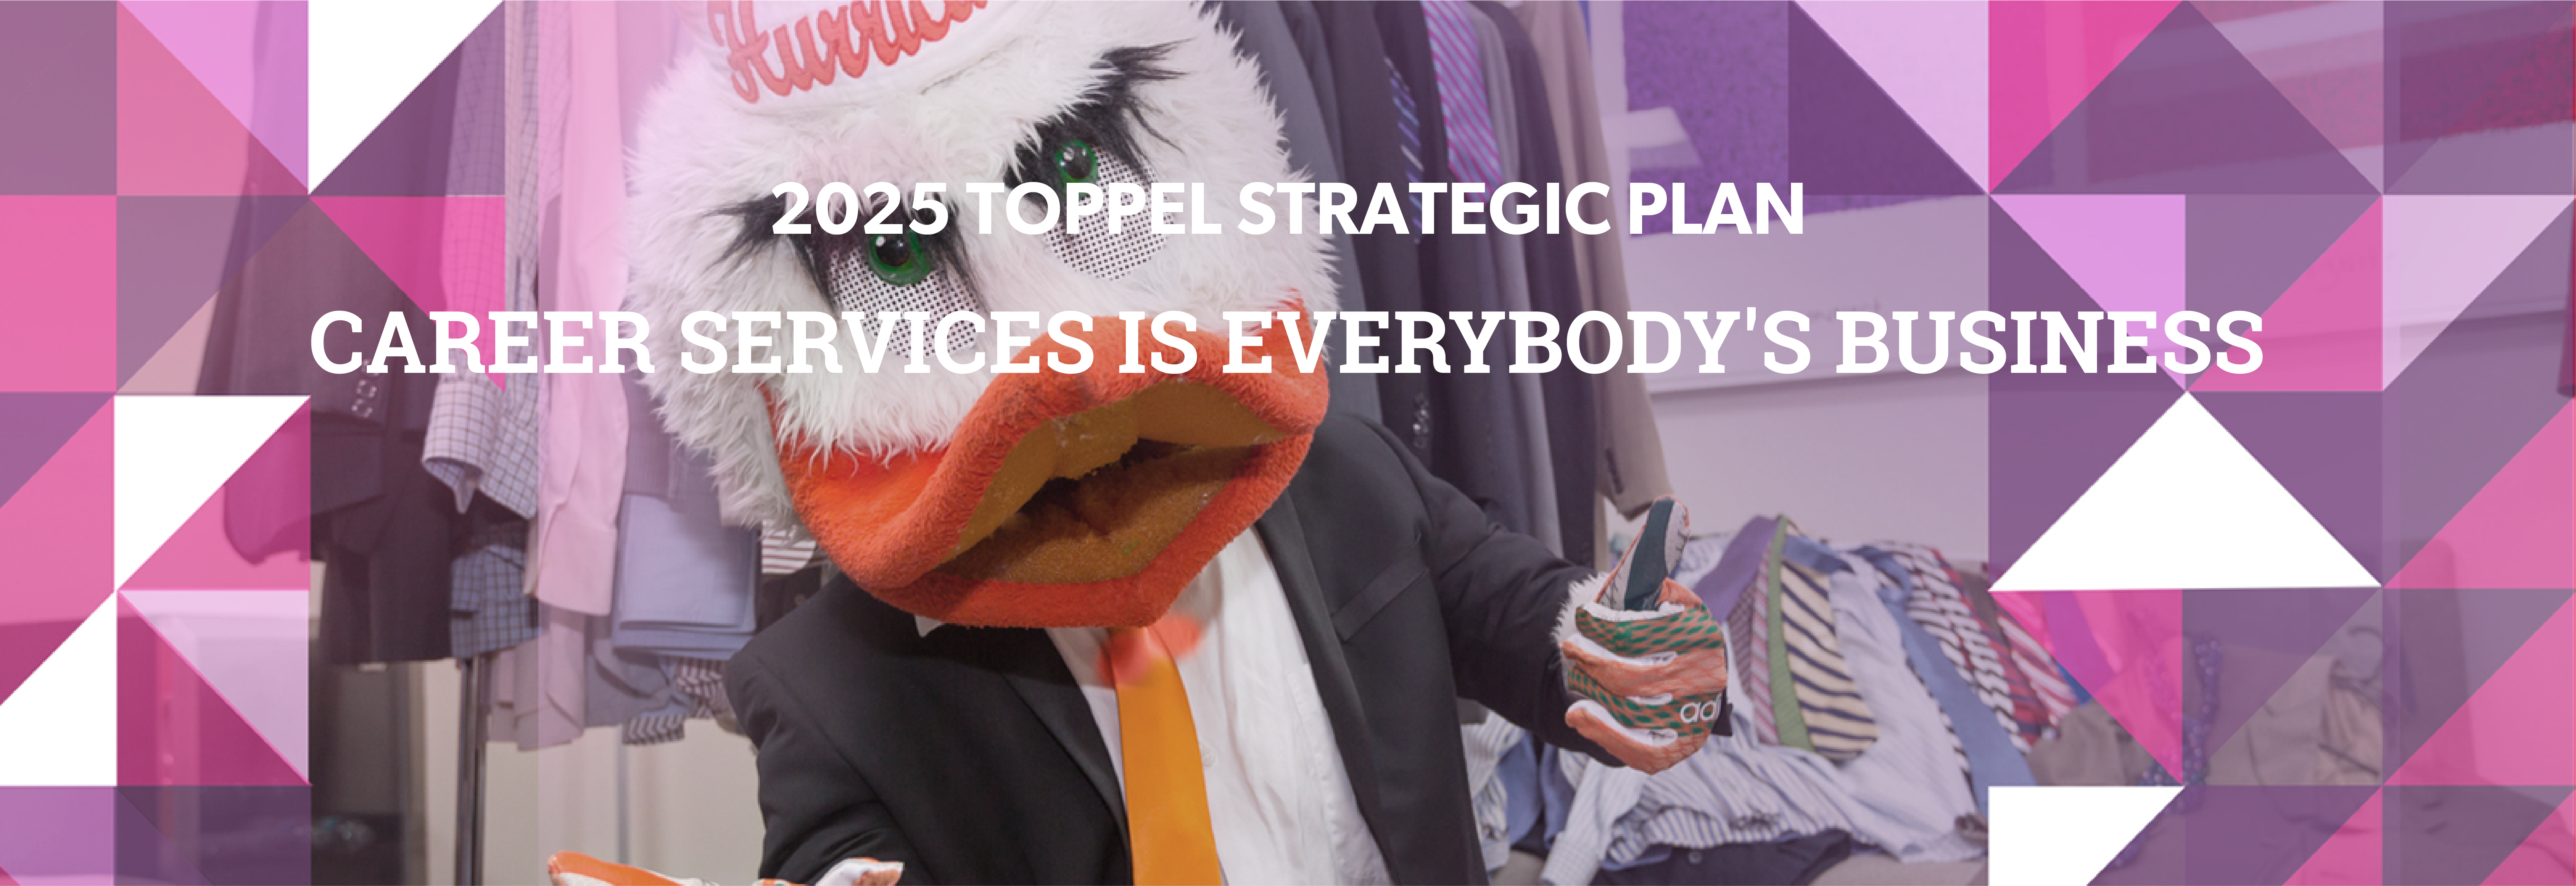 Toppel 2025 Career Services is Everybody's Business